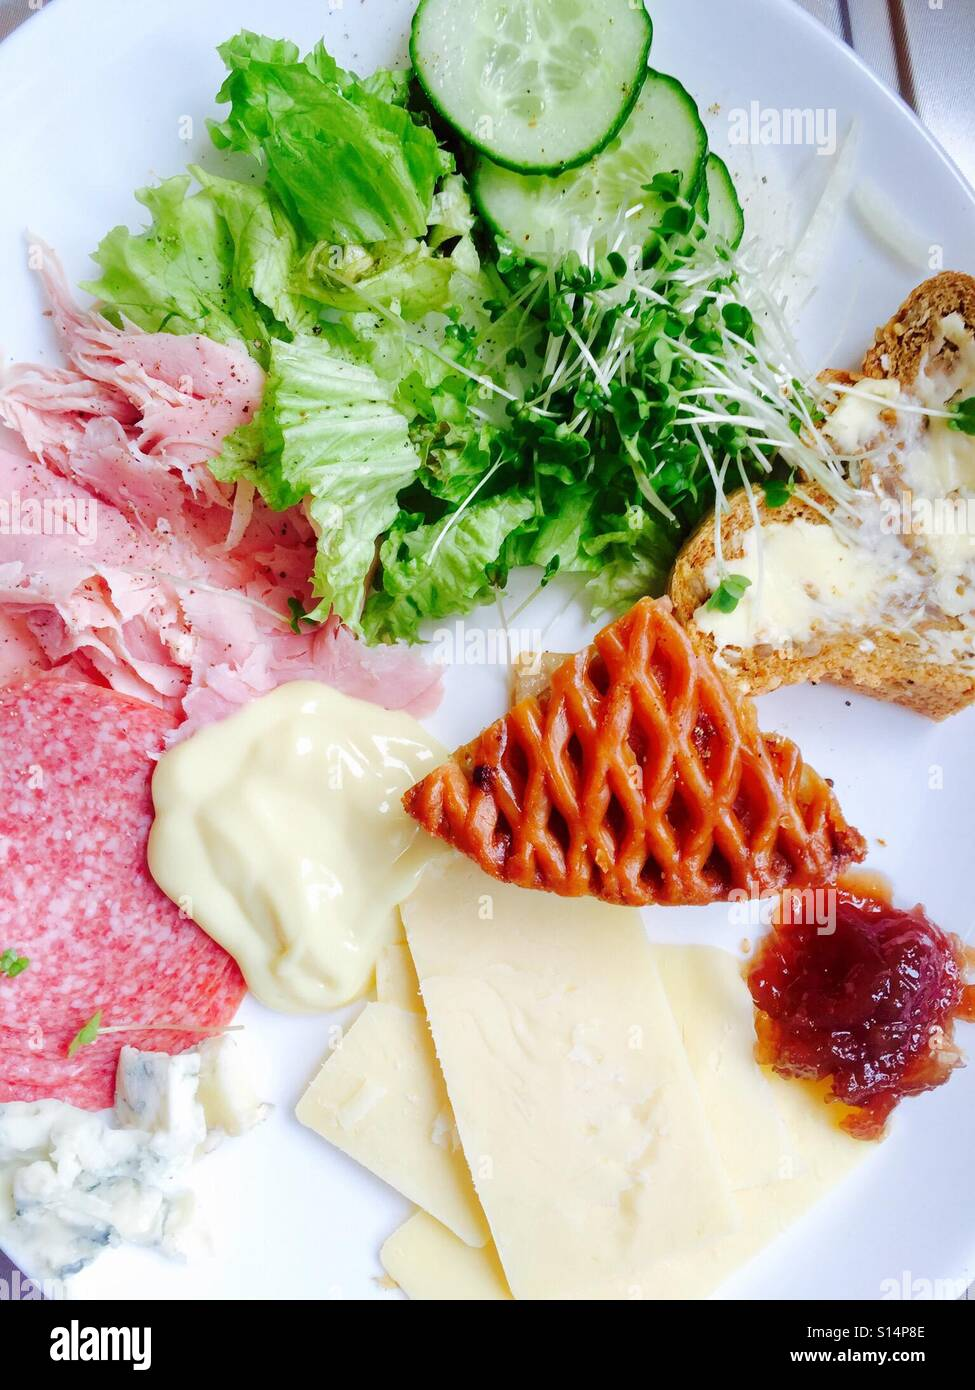 Pork pie, meat and cheese salad - Stock Image